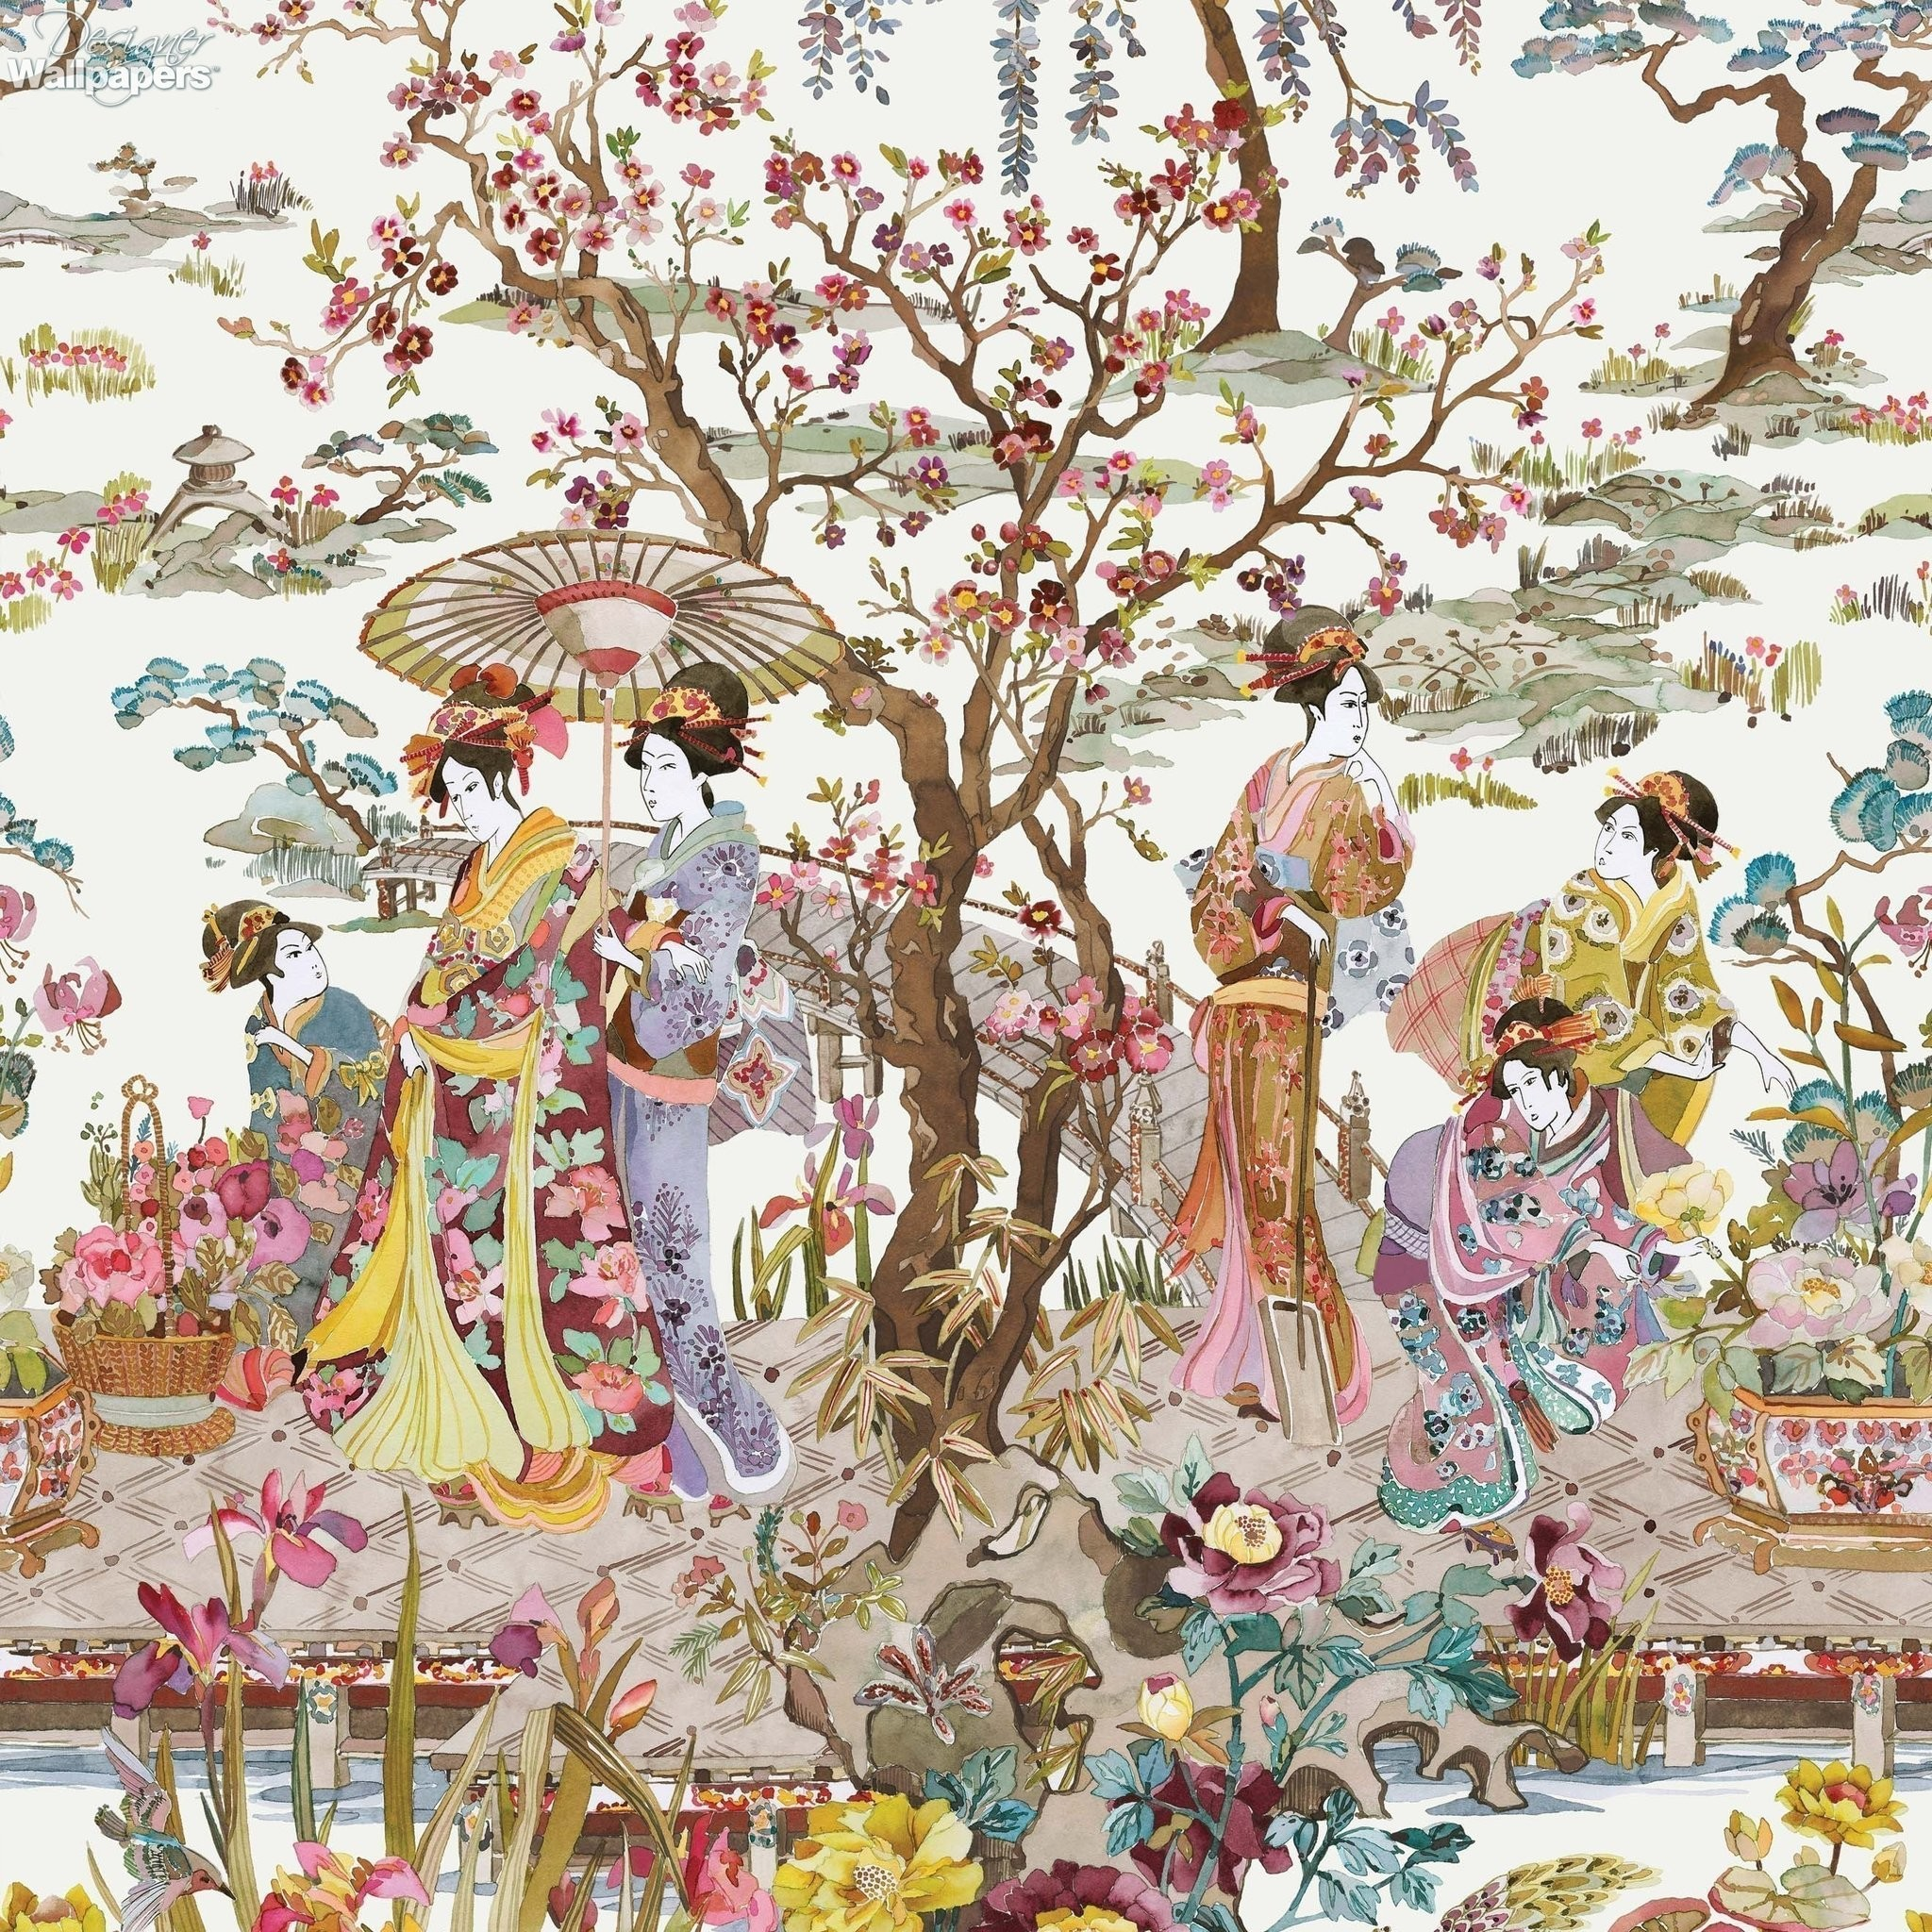 Res: 2048x2048, Japanese Garden Wallpaper in Ochre from the Enchanted Gardens Collection by  Osborne & Little